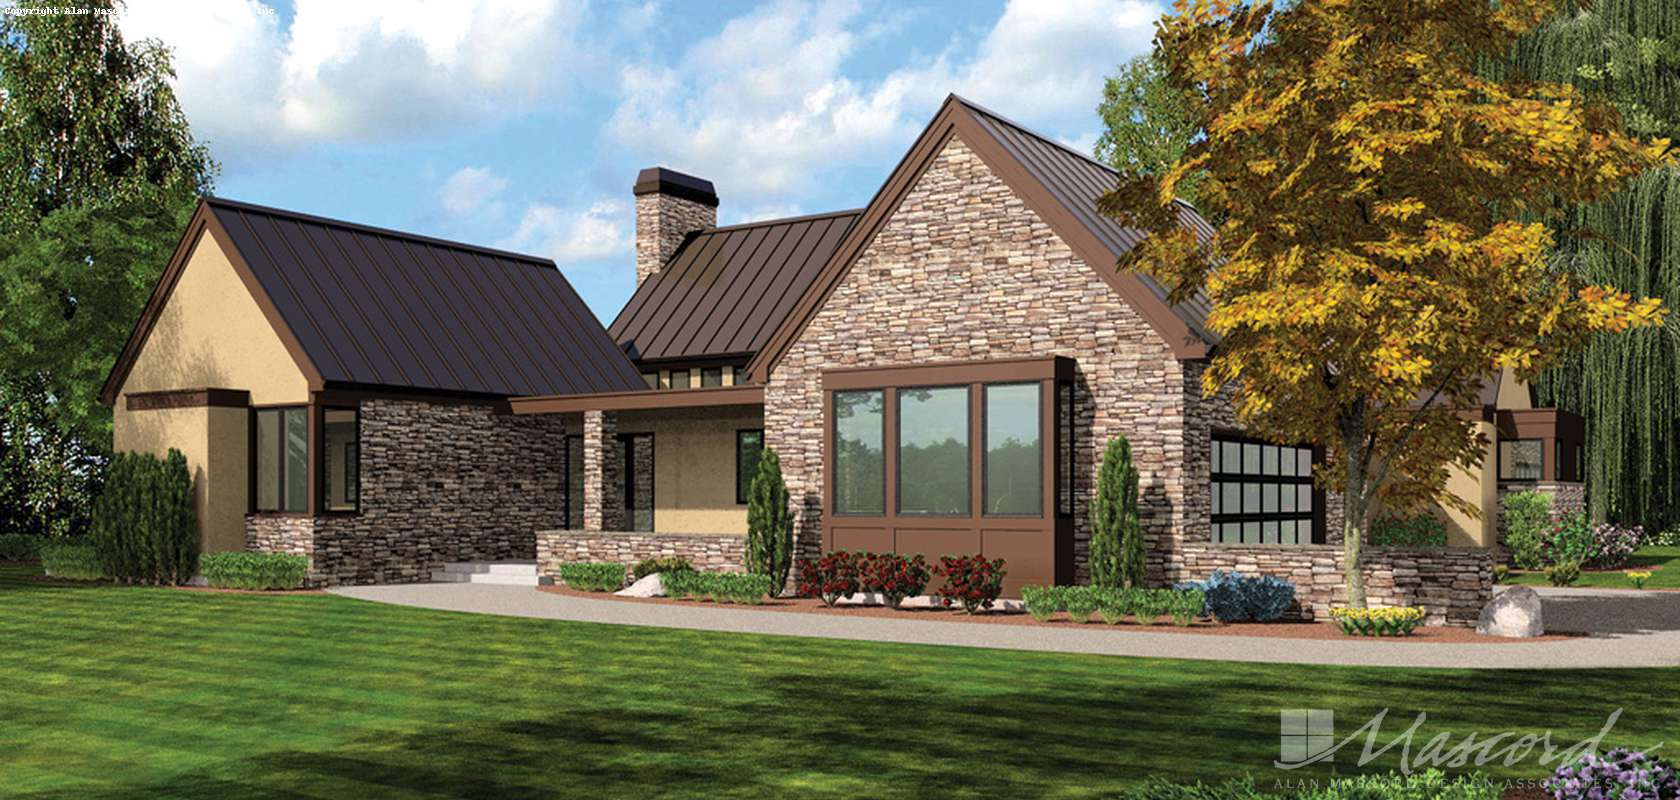 Mascord House Plan 1242: The Saxon